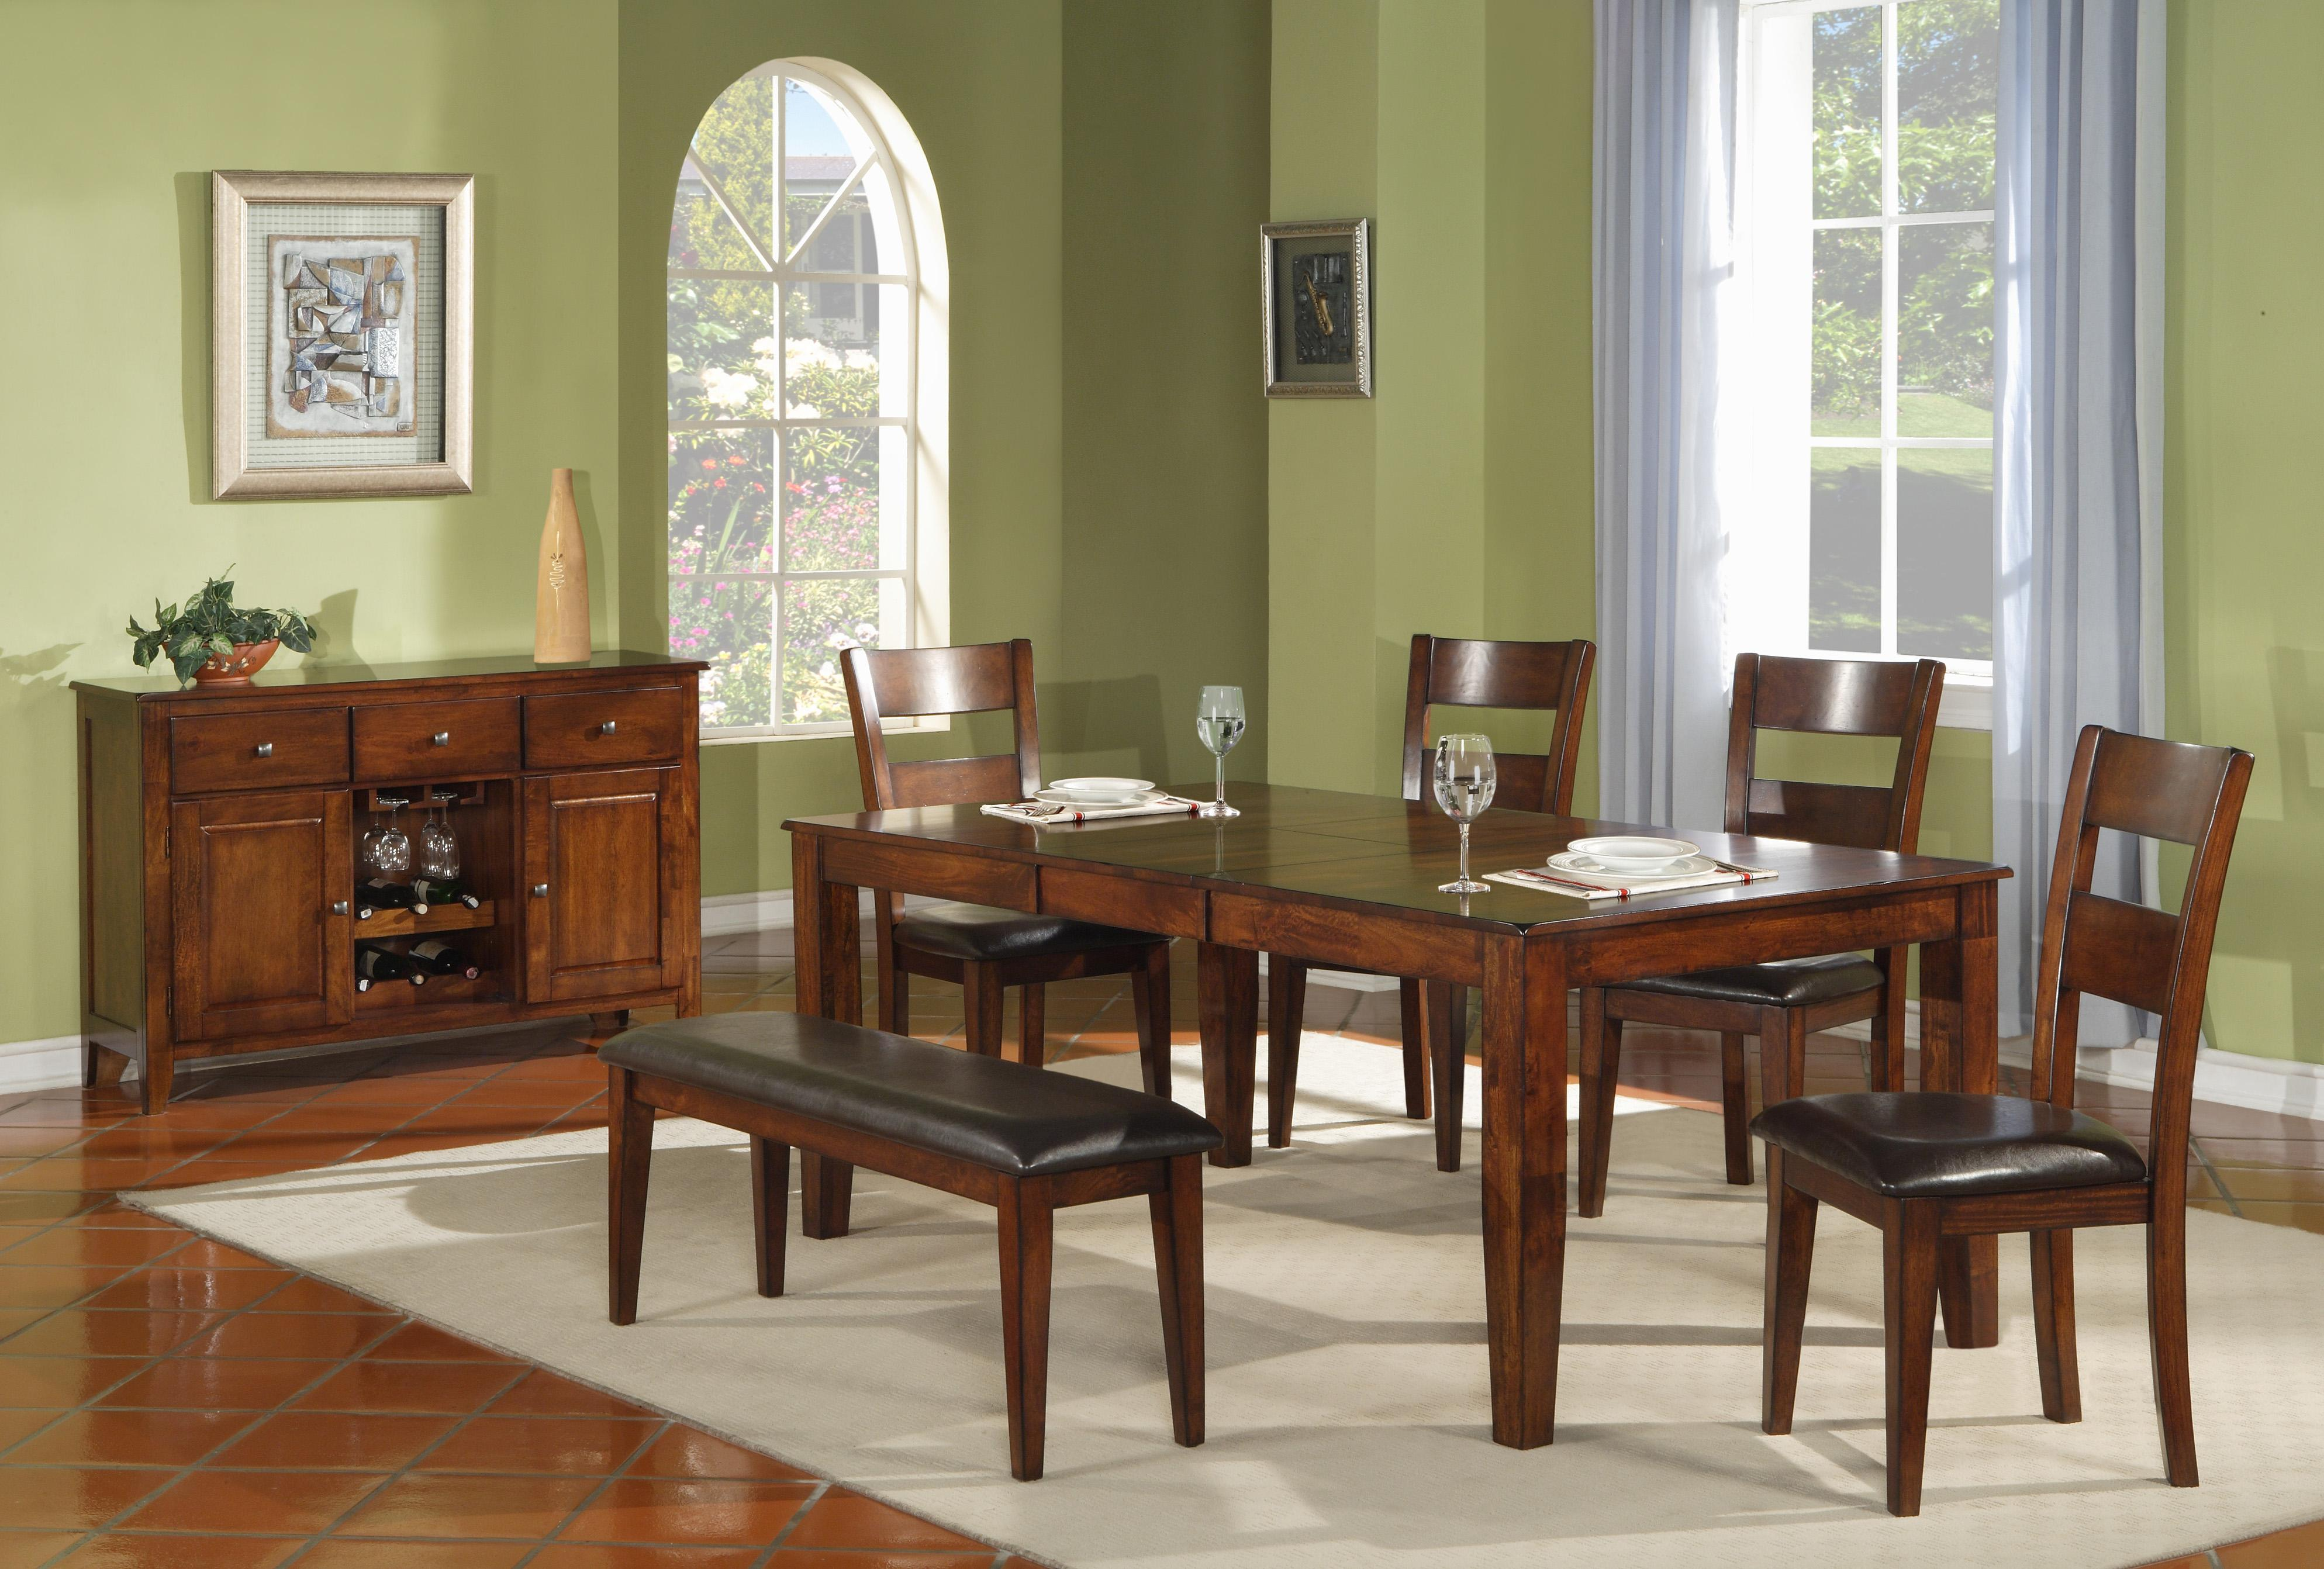 Popular 194 List modern solid wood dining table